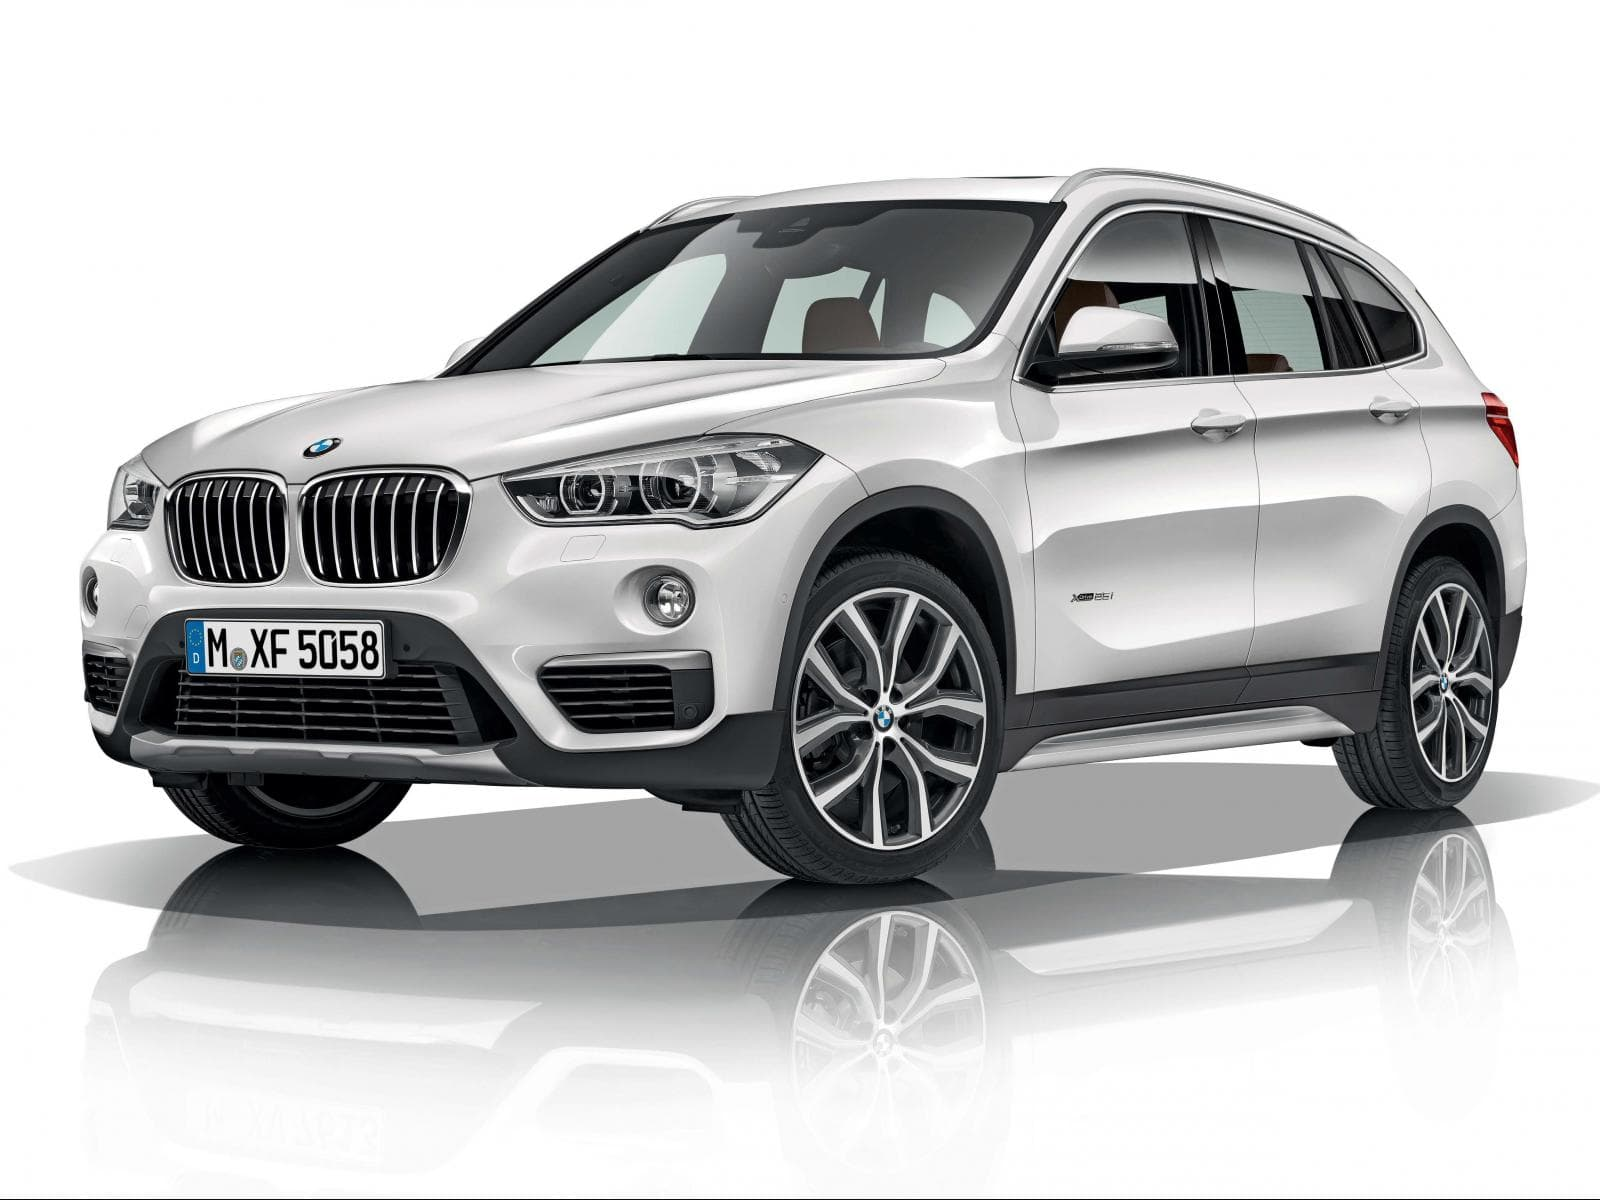 Car Exterior: BMW X1 Wallpapers, Free Download